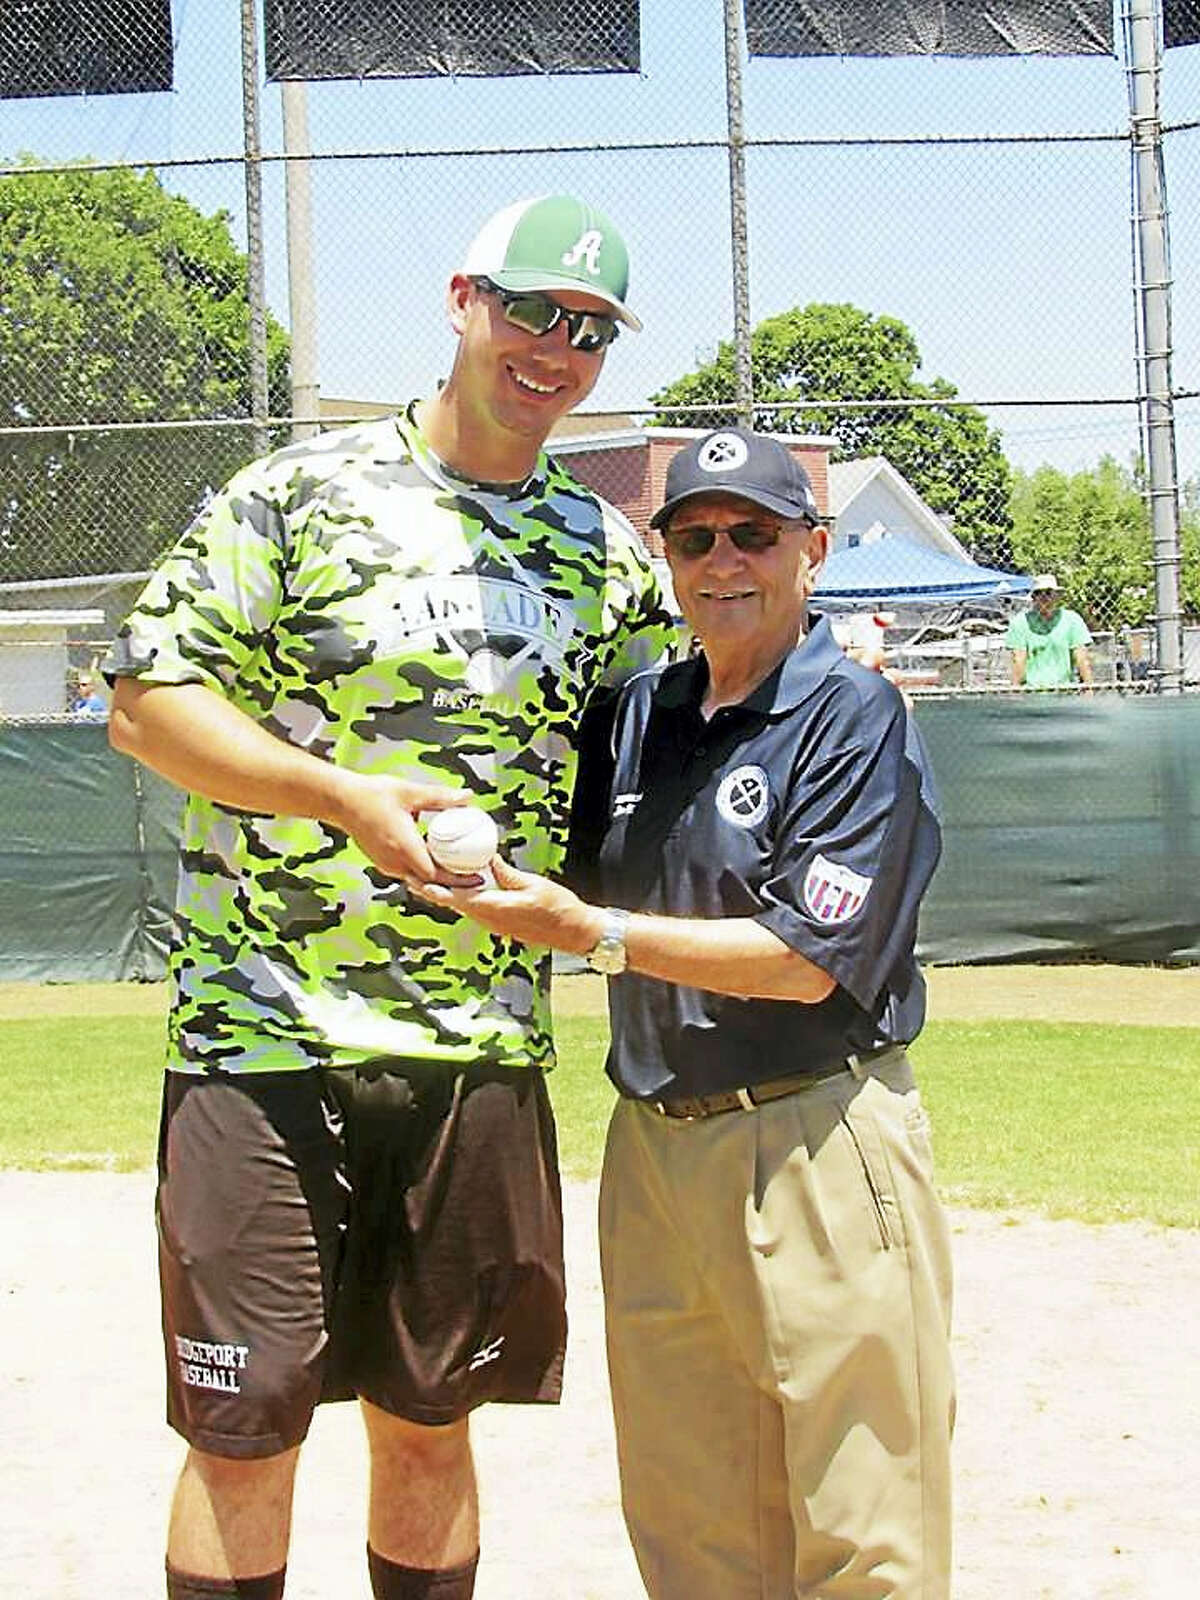 All-Star MVP and Home Run Derby Champion Mike Olszyk with WHTL President Vin DiLauro.